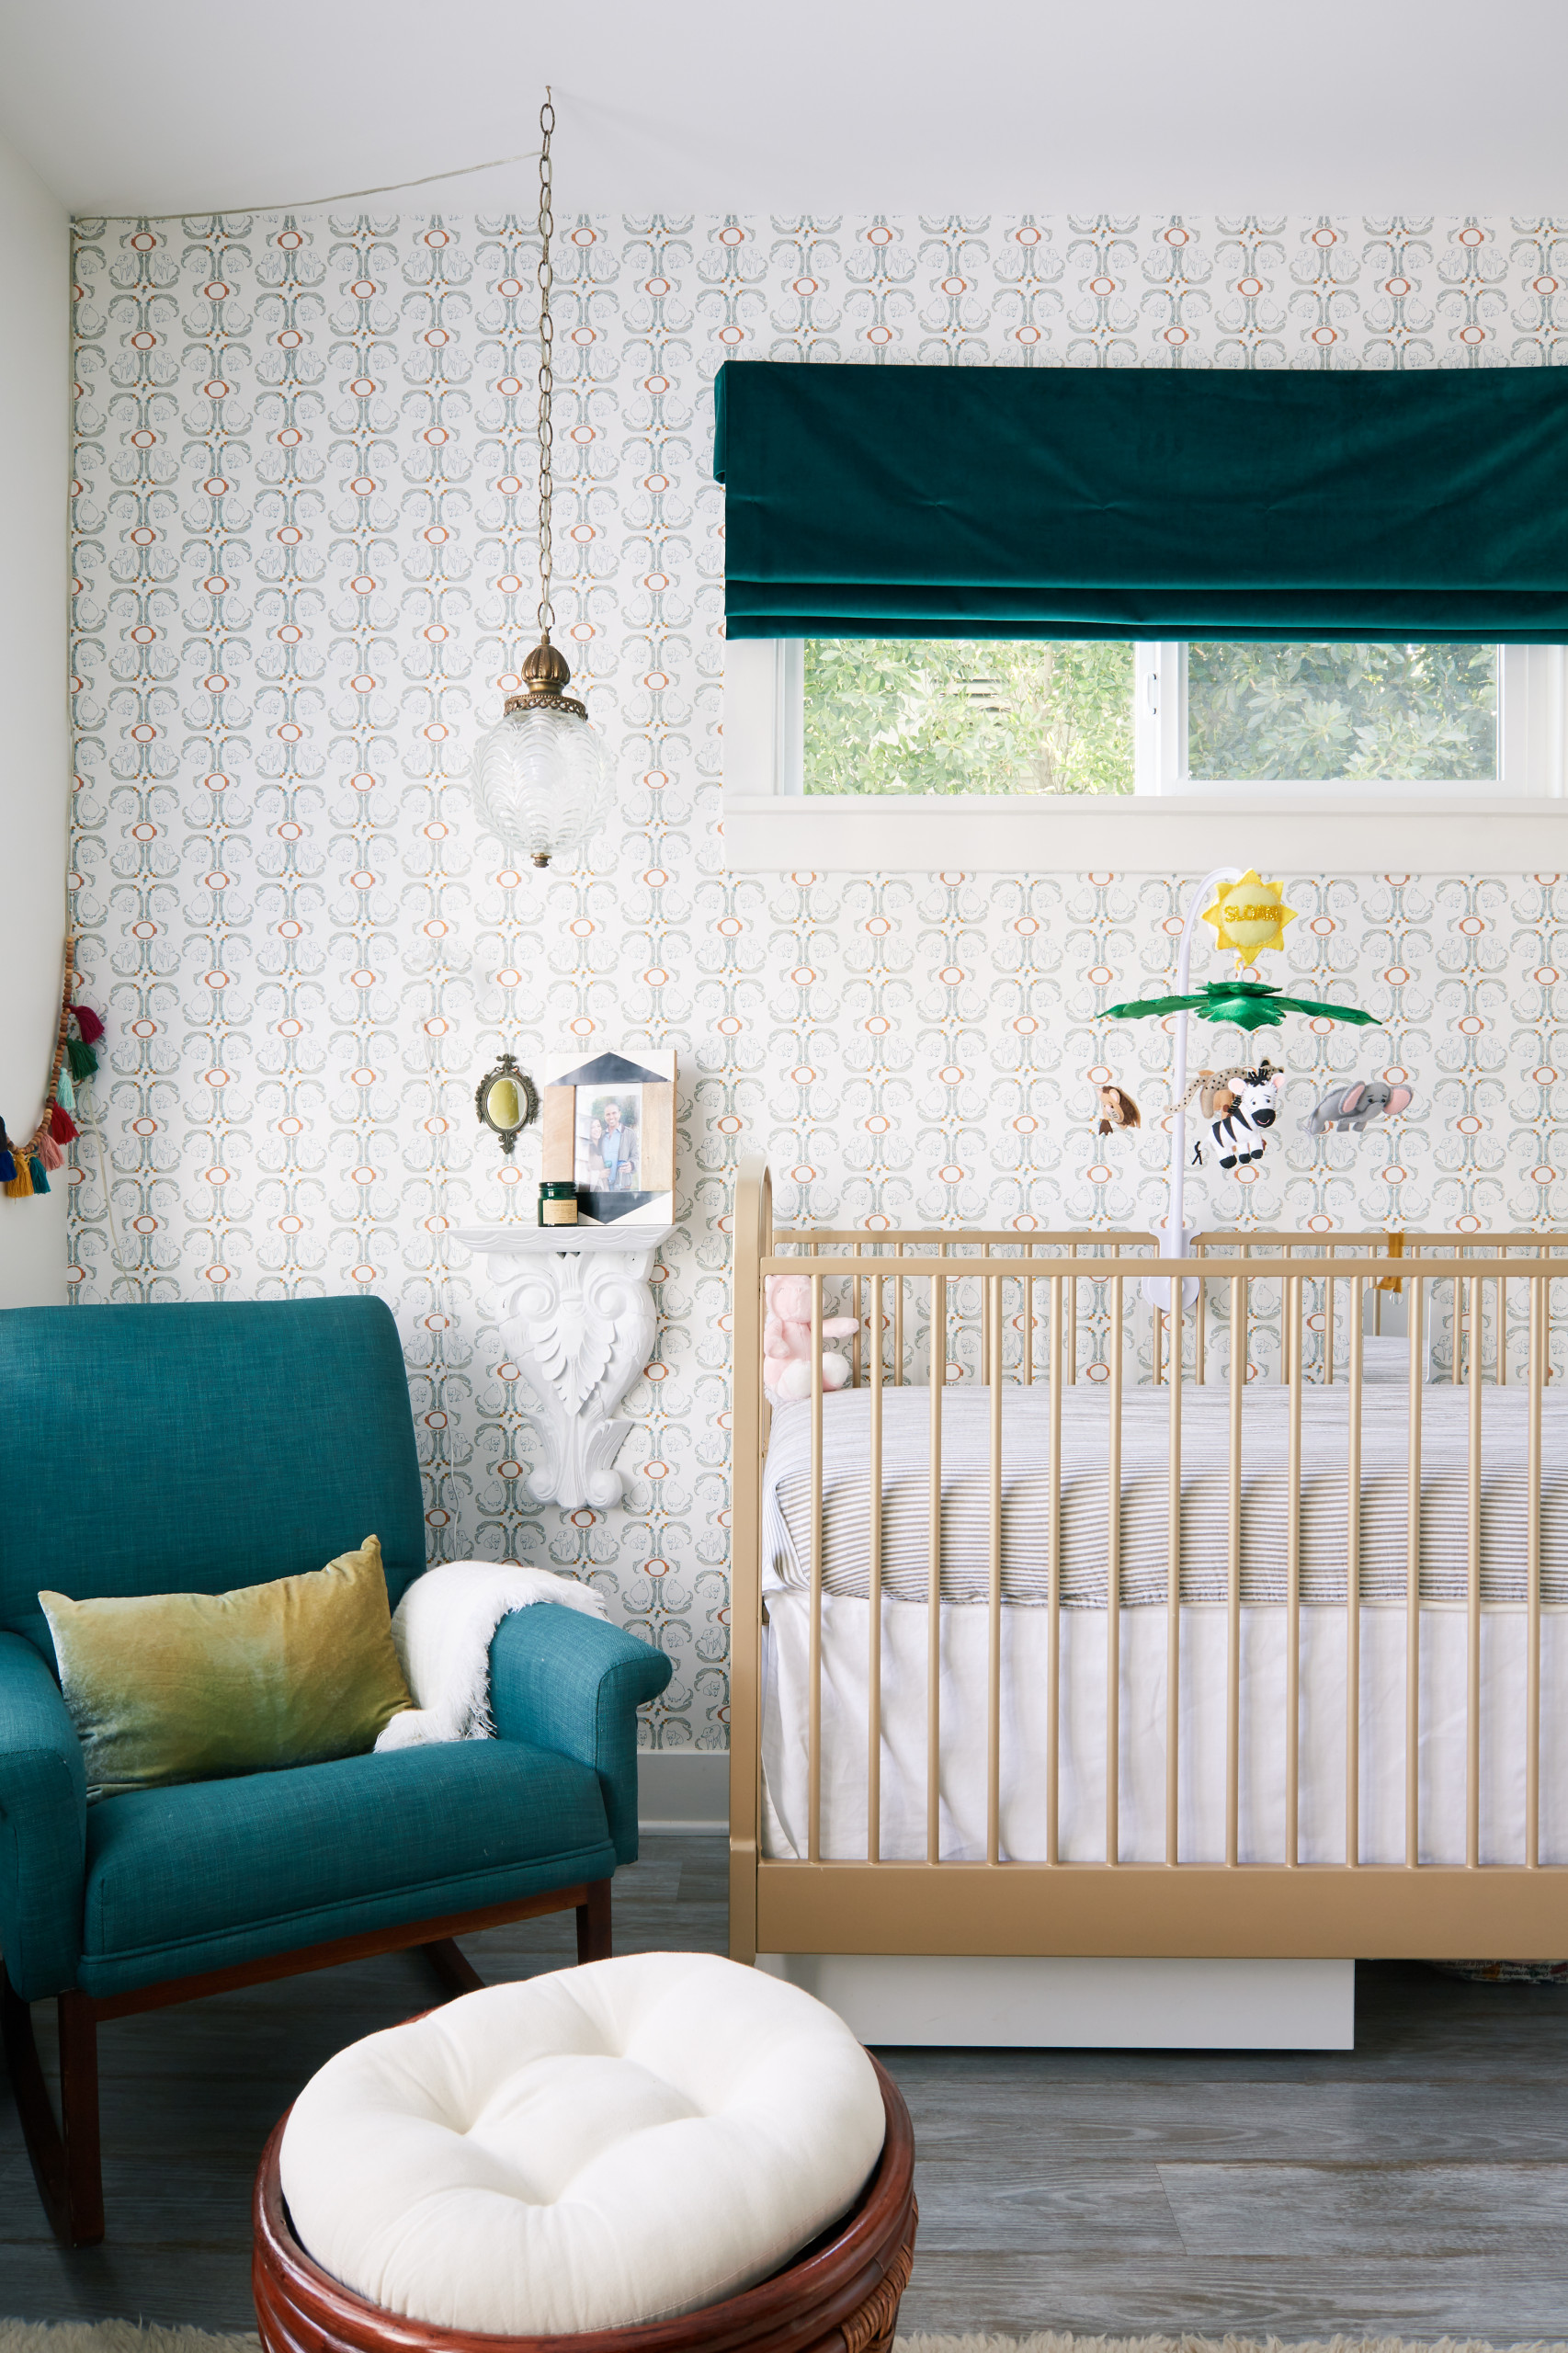 Combining a hint of color with a serene backdrop in the modern nursery